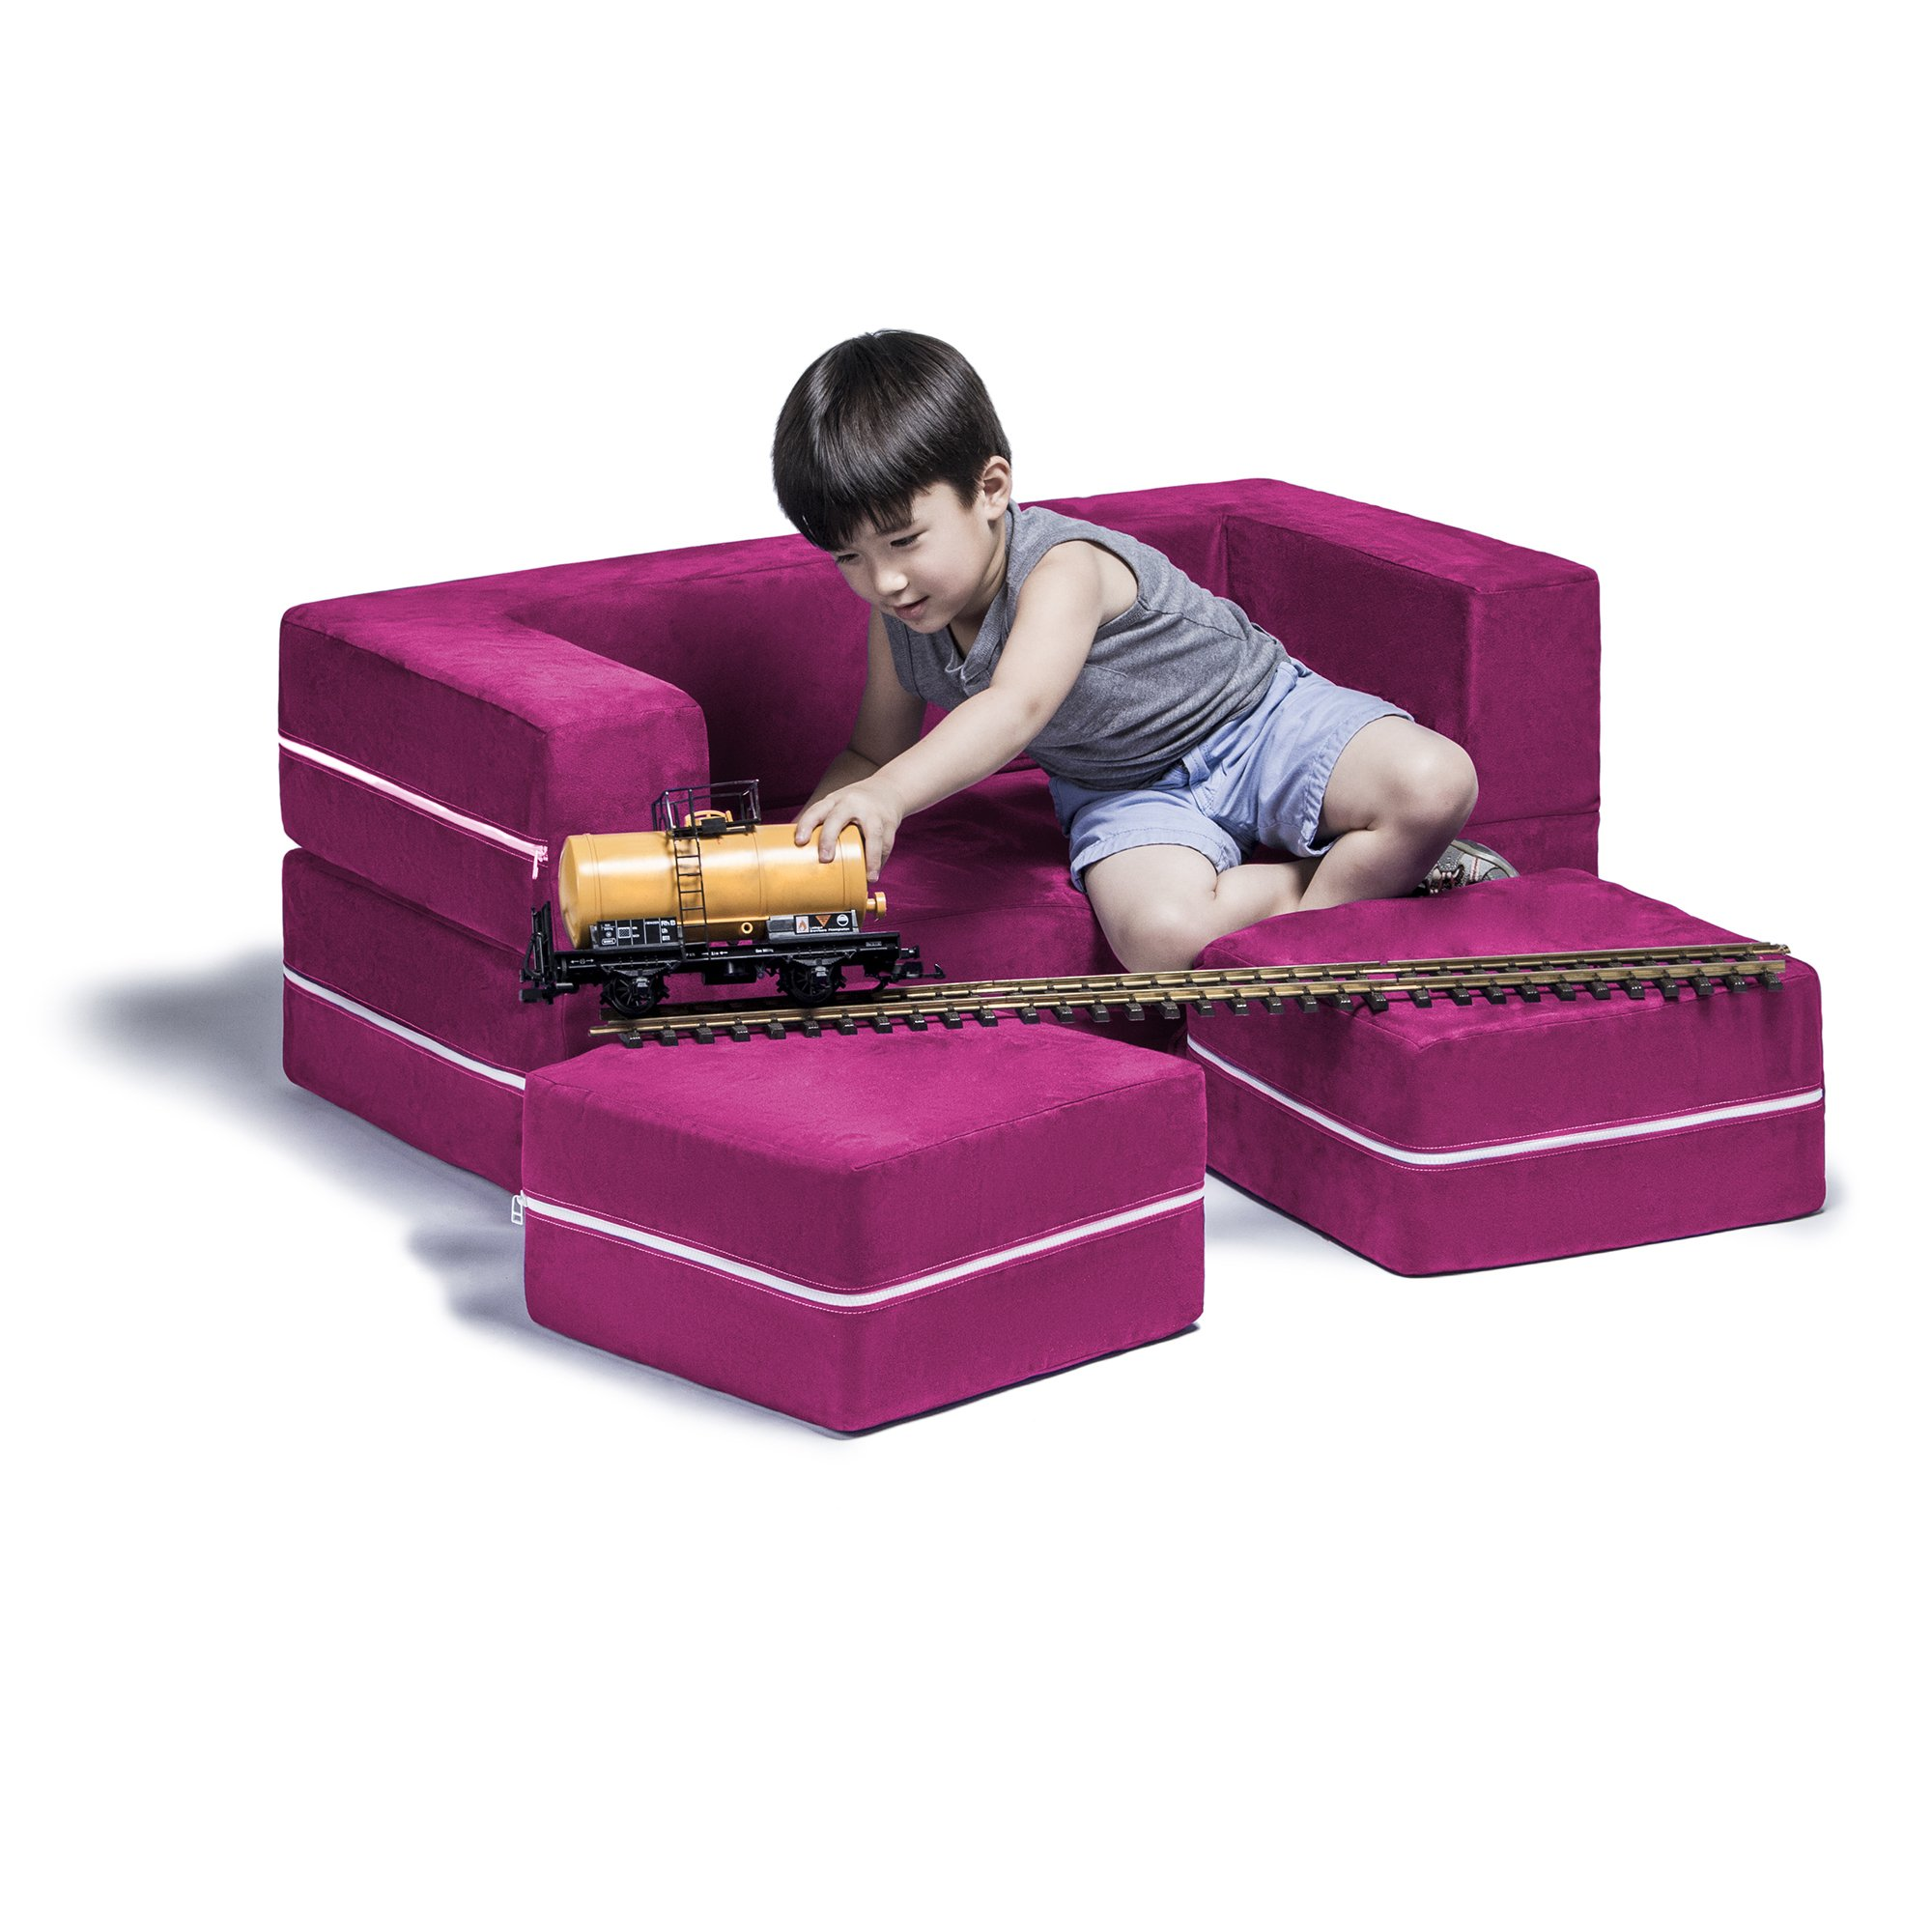 Jaxx Zipline Kids Modular Loveseat & Ottomans / Fold Out Lounger, Fuchsia by Jaxx (Image #1)